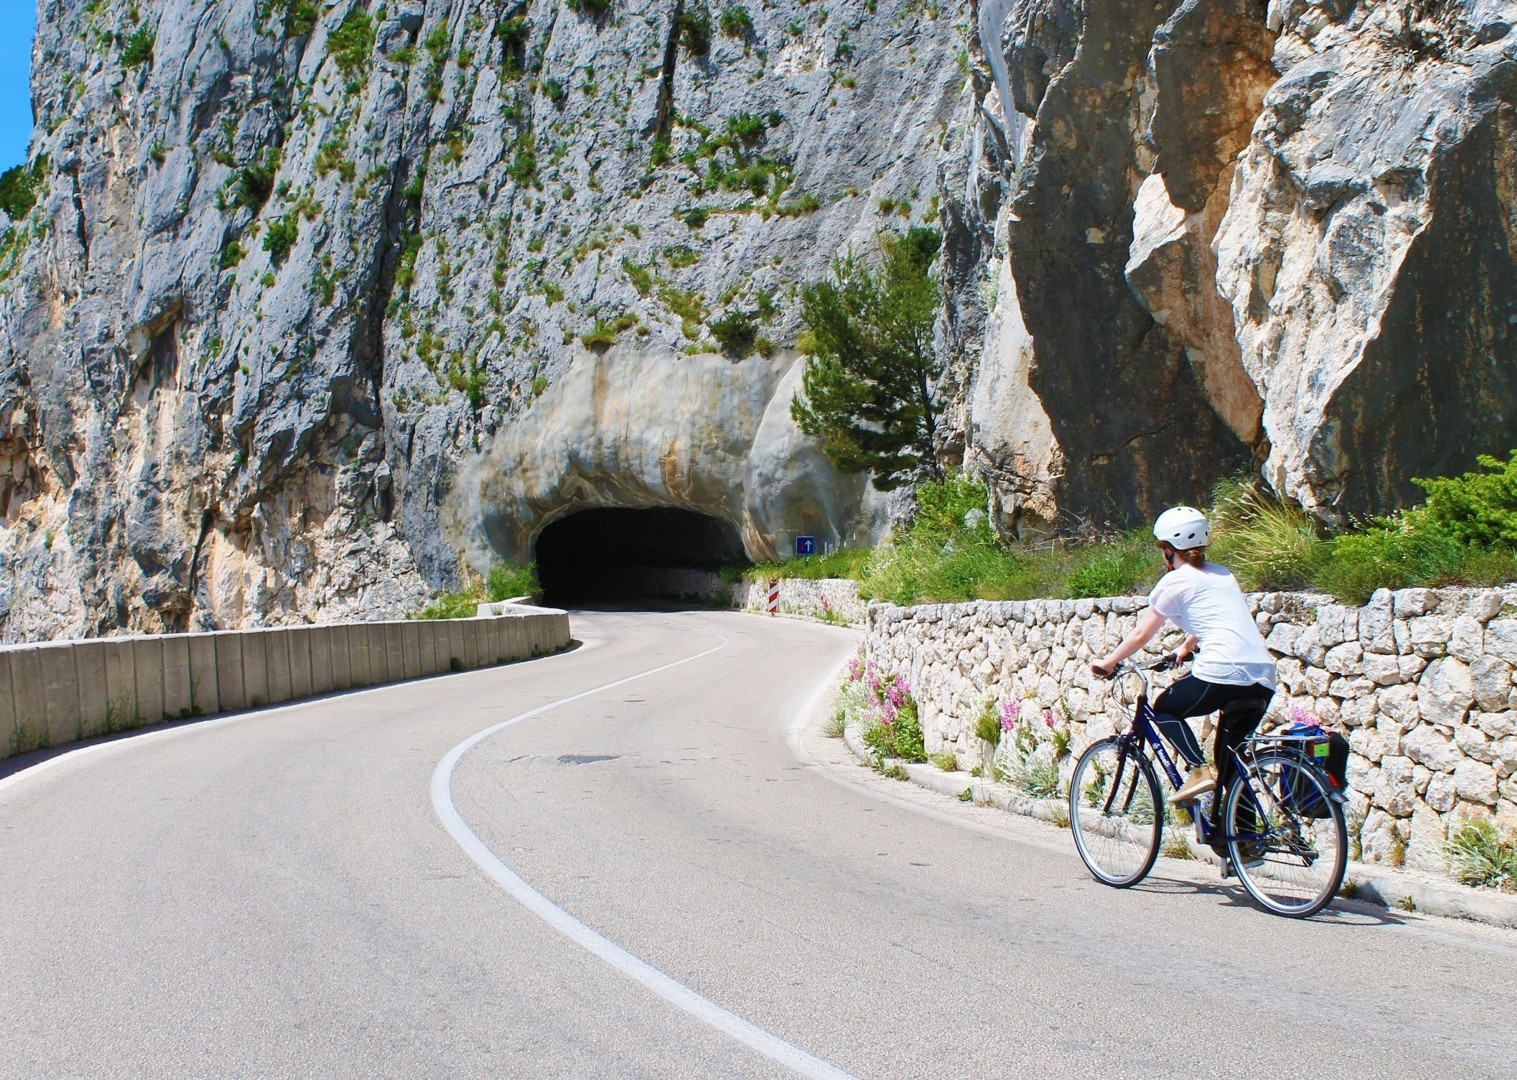 croatian-natural-tunnels-boat-biking-holiday.jpg - Croatia - Southern Dalmatia Plus - Bike and Boat Holiday - Leisure Cycling